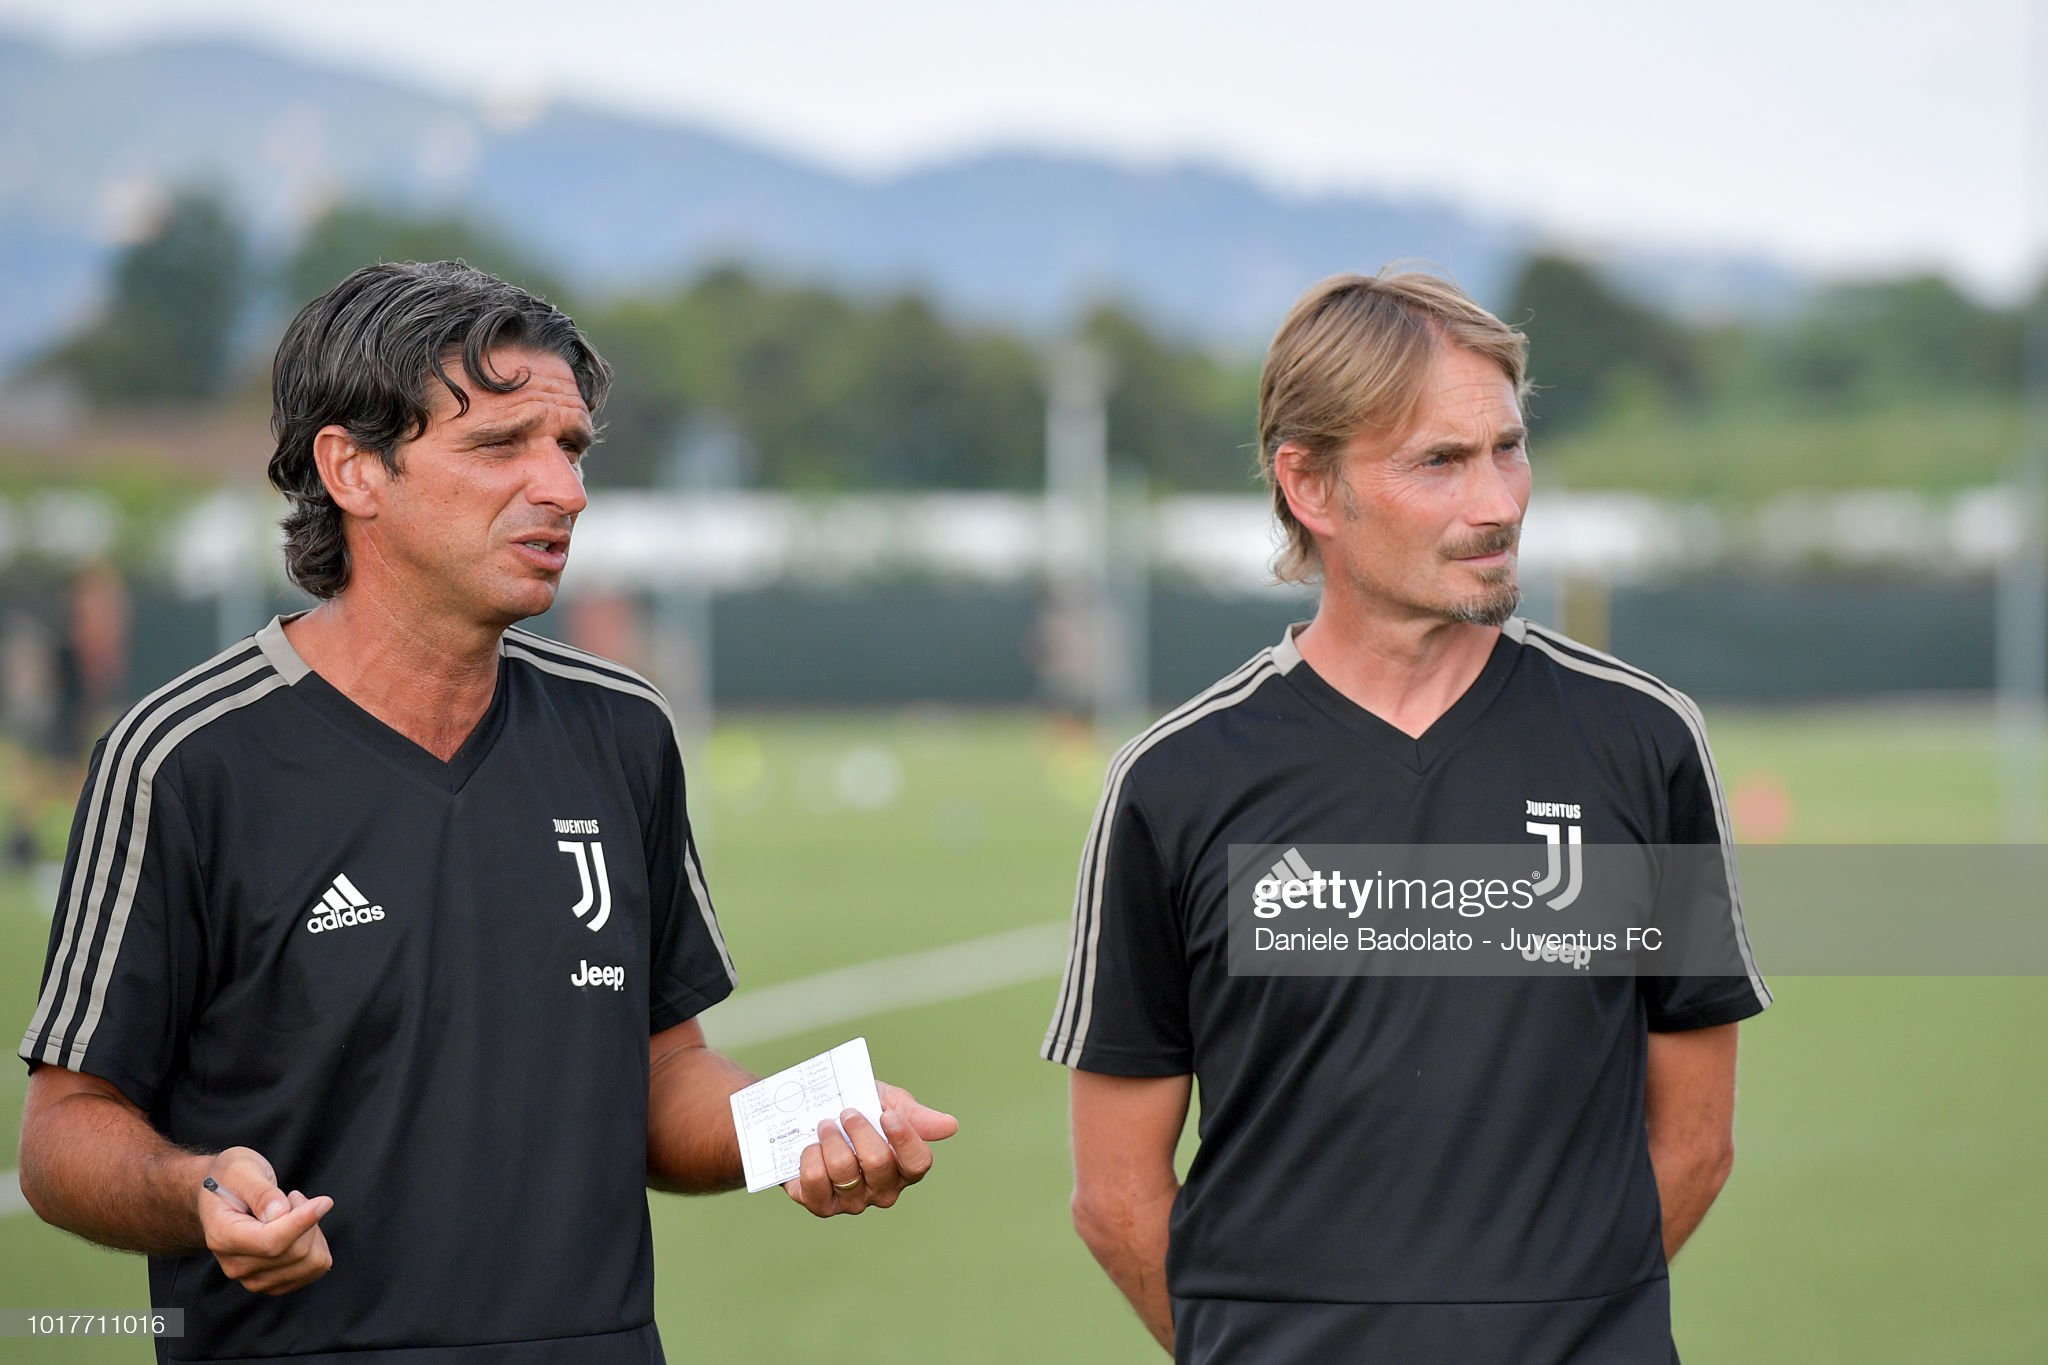 https://media.gettyimages.com/photos/juventus-u14-coaches-edoardo-sacchini-and-alberto-lampo-during-a-picture-id1017711016?s=2048x2048